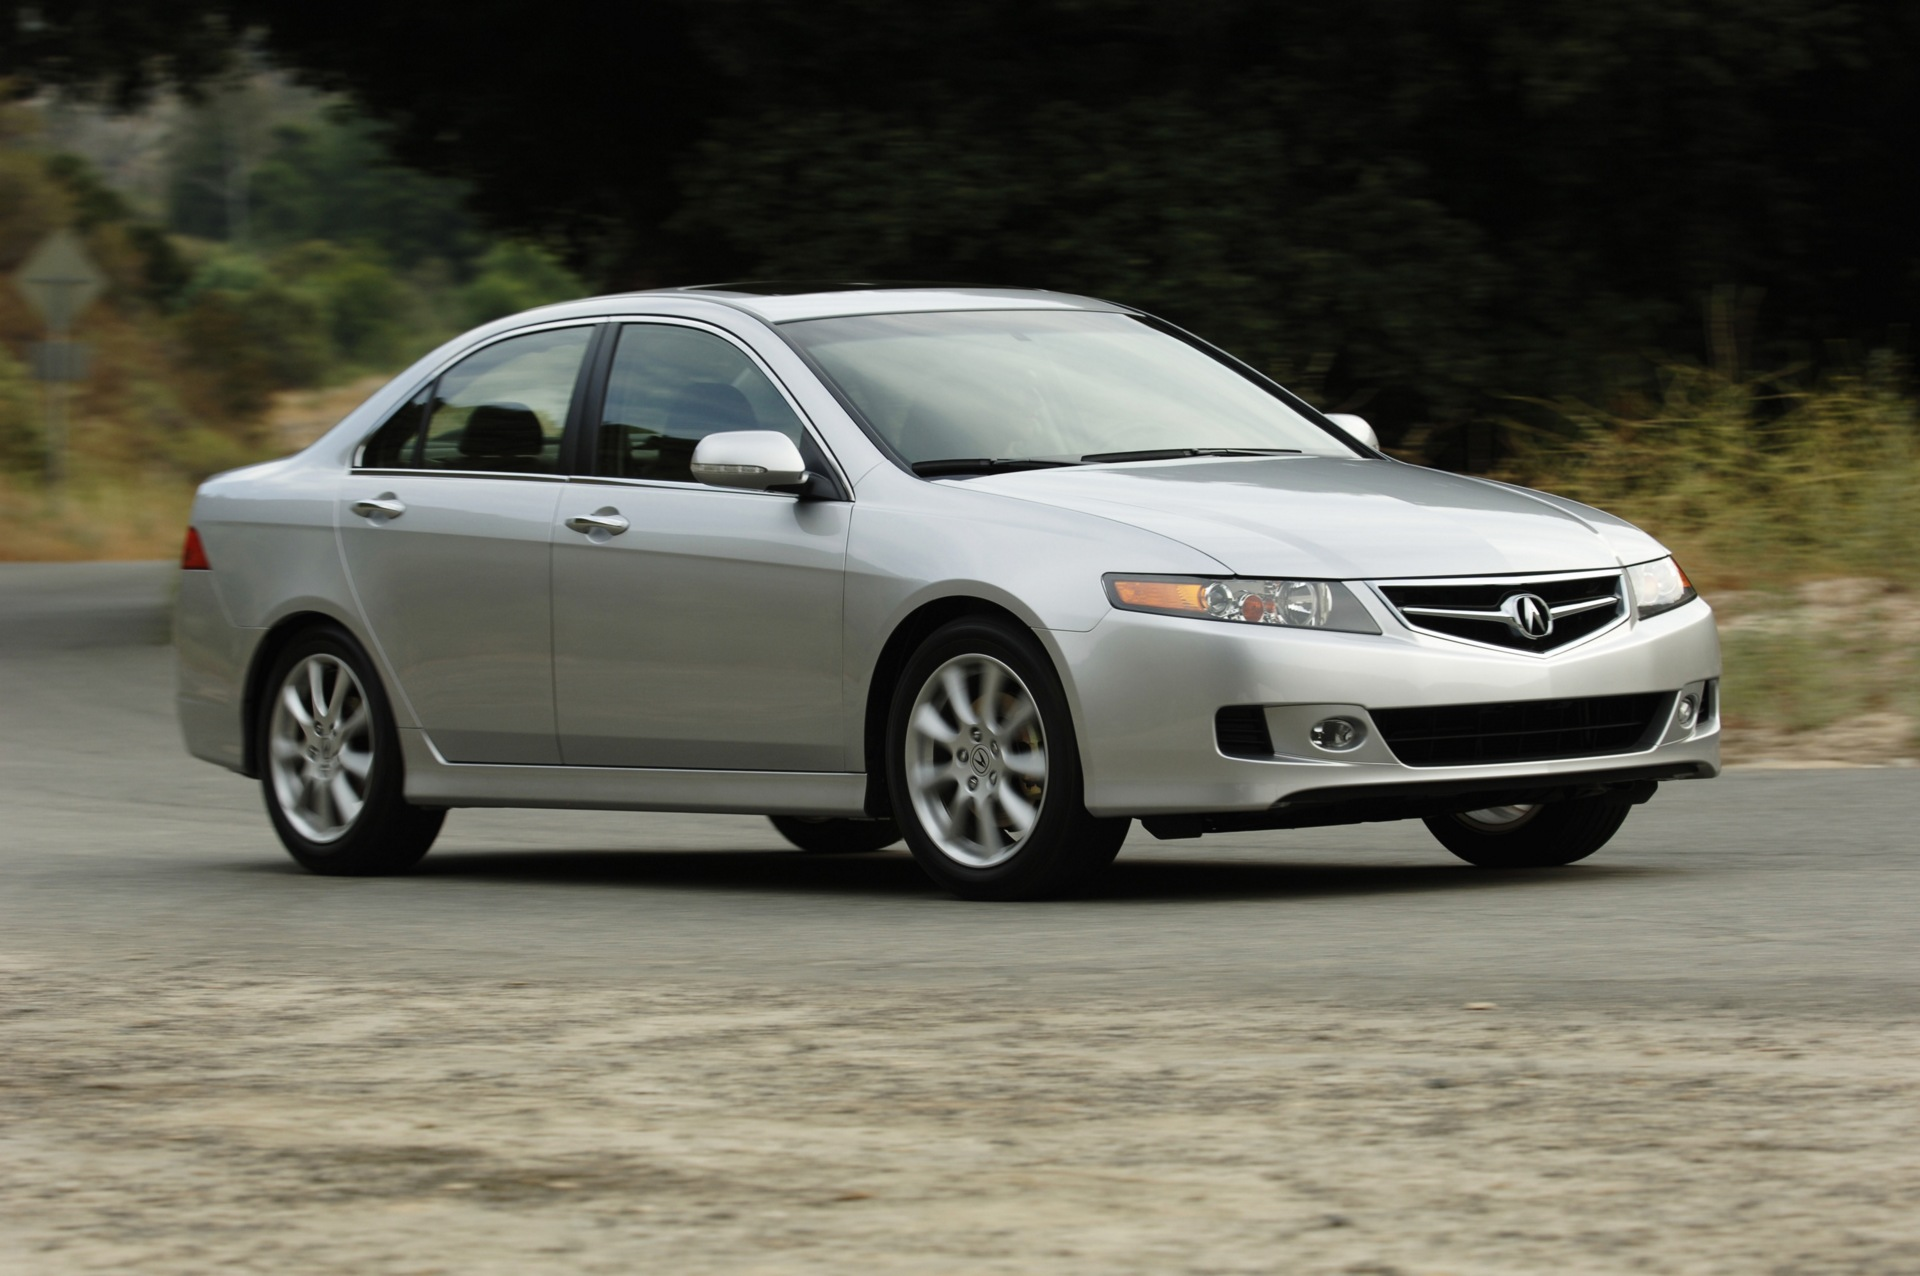 2008 acura tsx news and information conceptcarz com rh conceptcarz com Acura TSX Repair Manual Acura TSX Manual Transmission